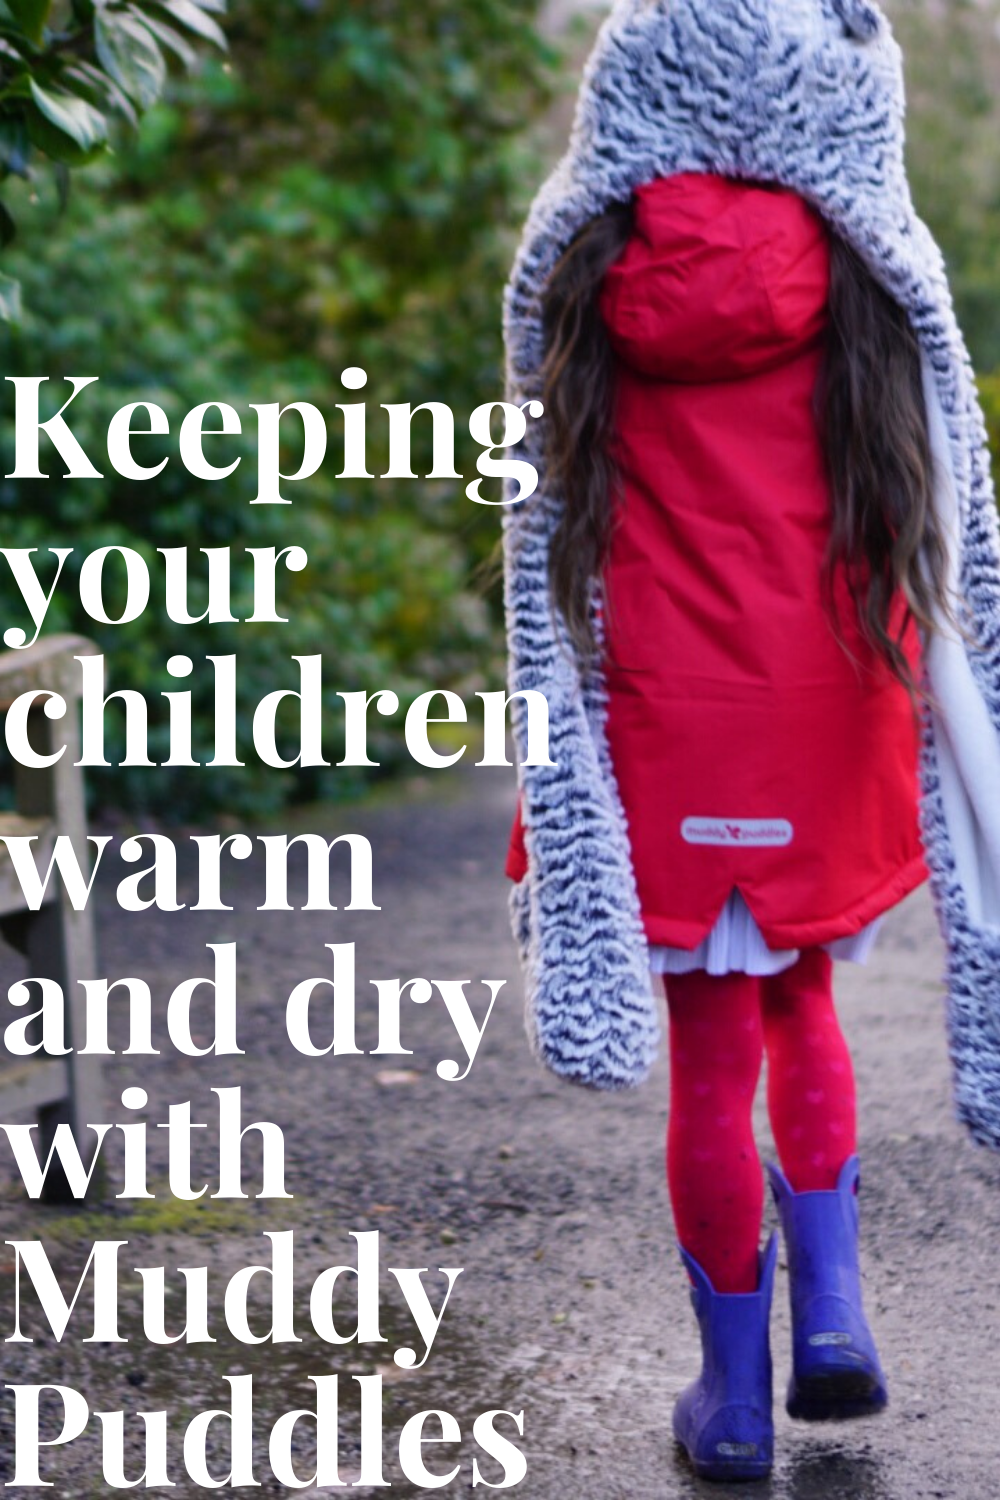 keep warm and dry with muddy puddles